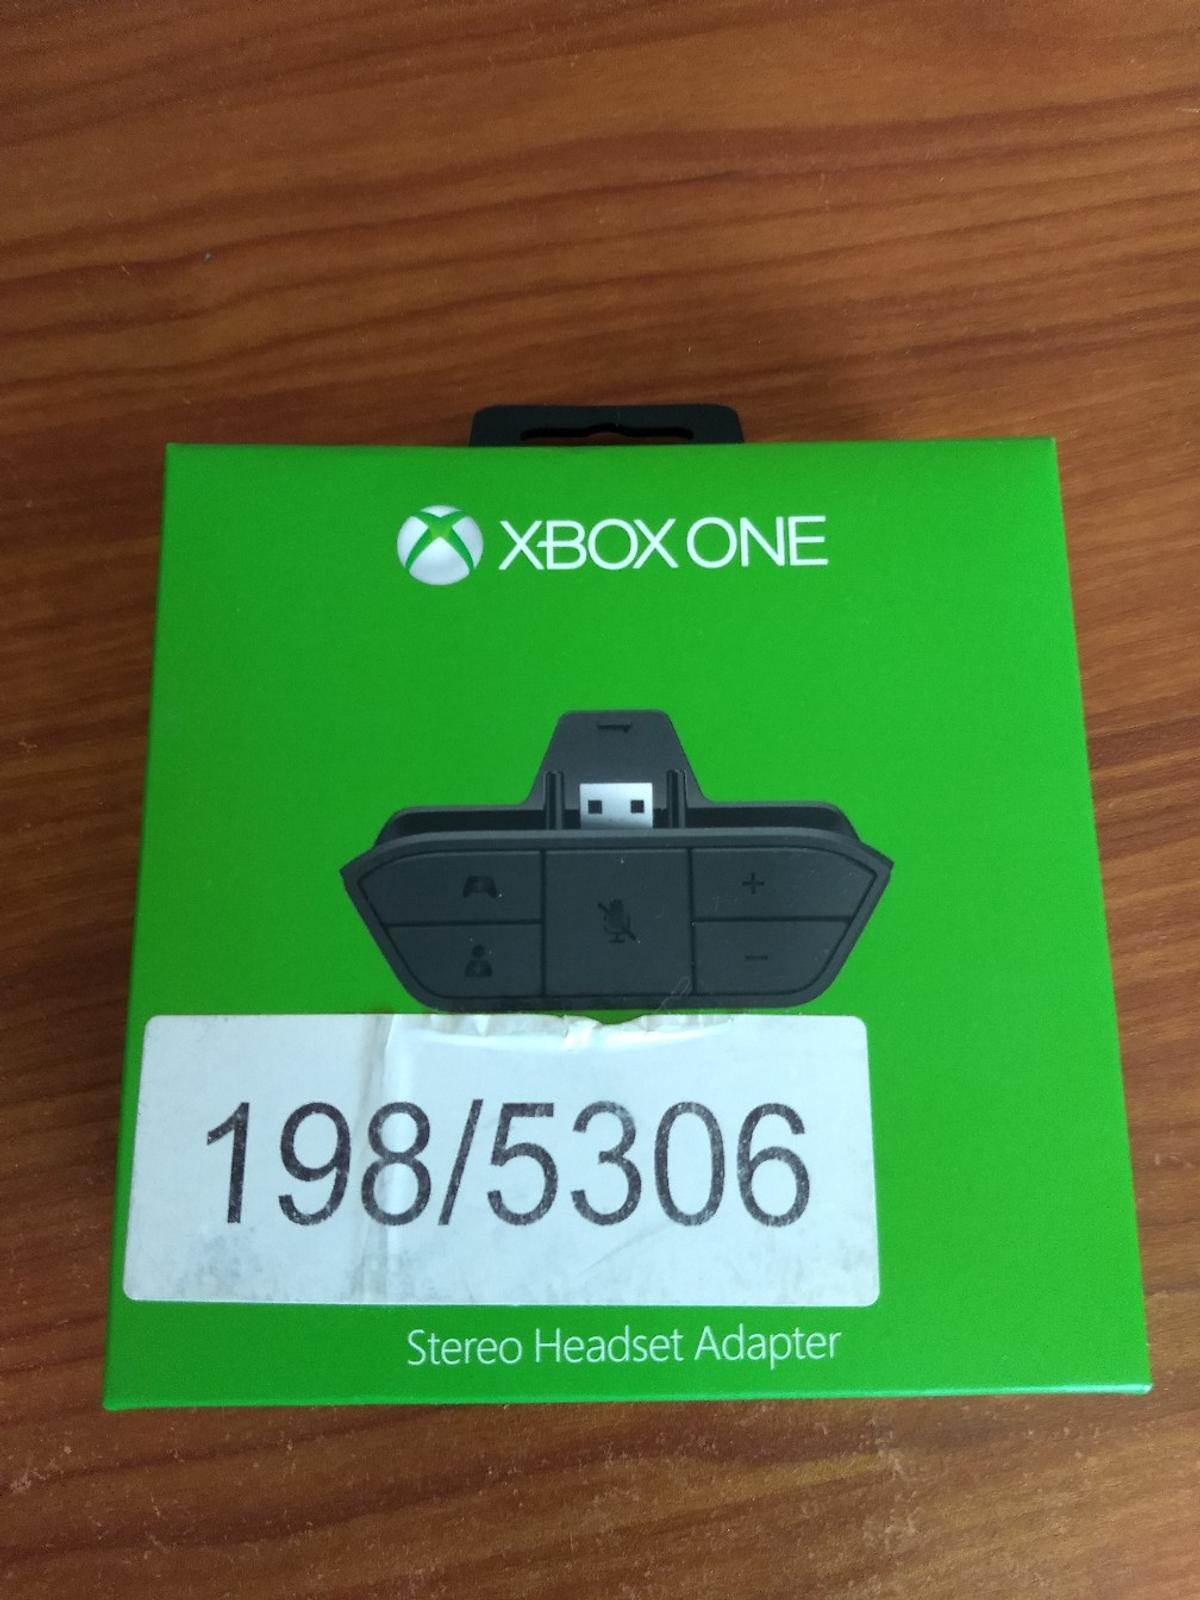 Fixing The Xbox One Stereo Headset Manual Guide